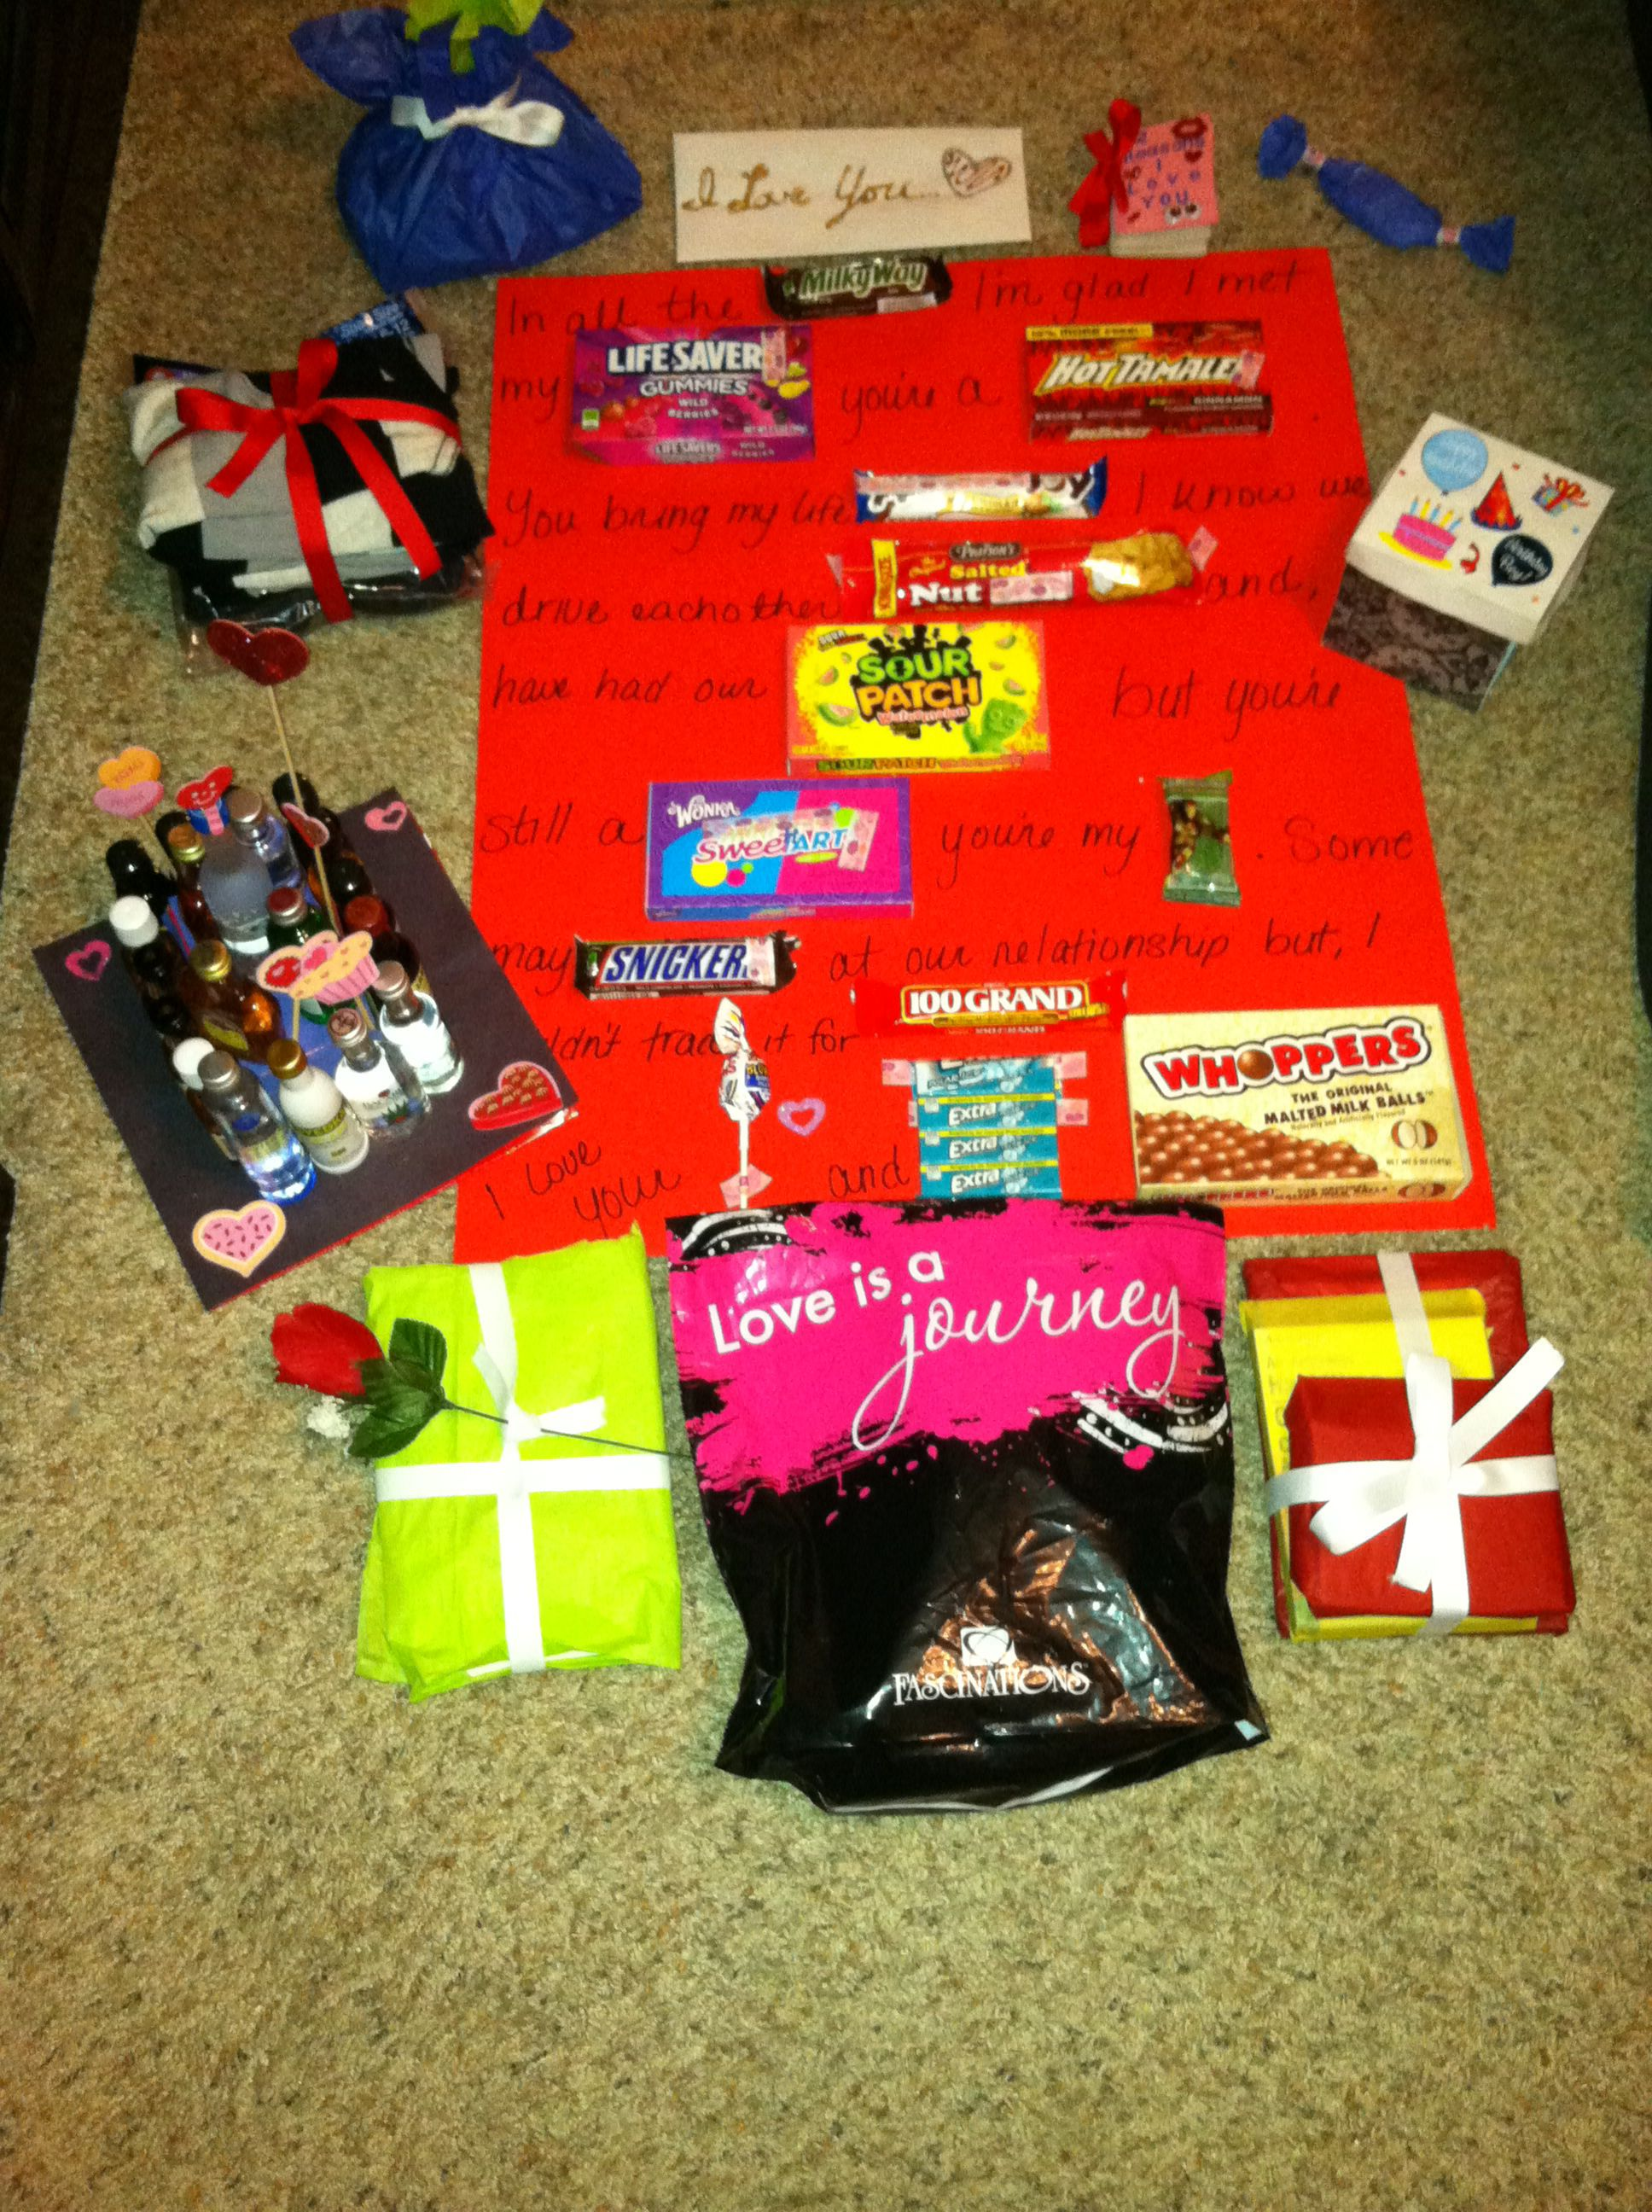 Share 22nd Birthday Gift Ideas For Boyfriend 22Nd Gifts 22 Bday Boyfriends My Cake I